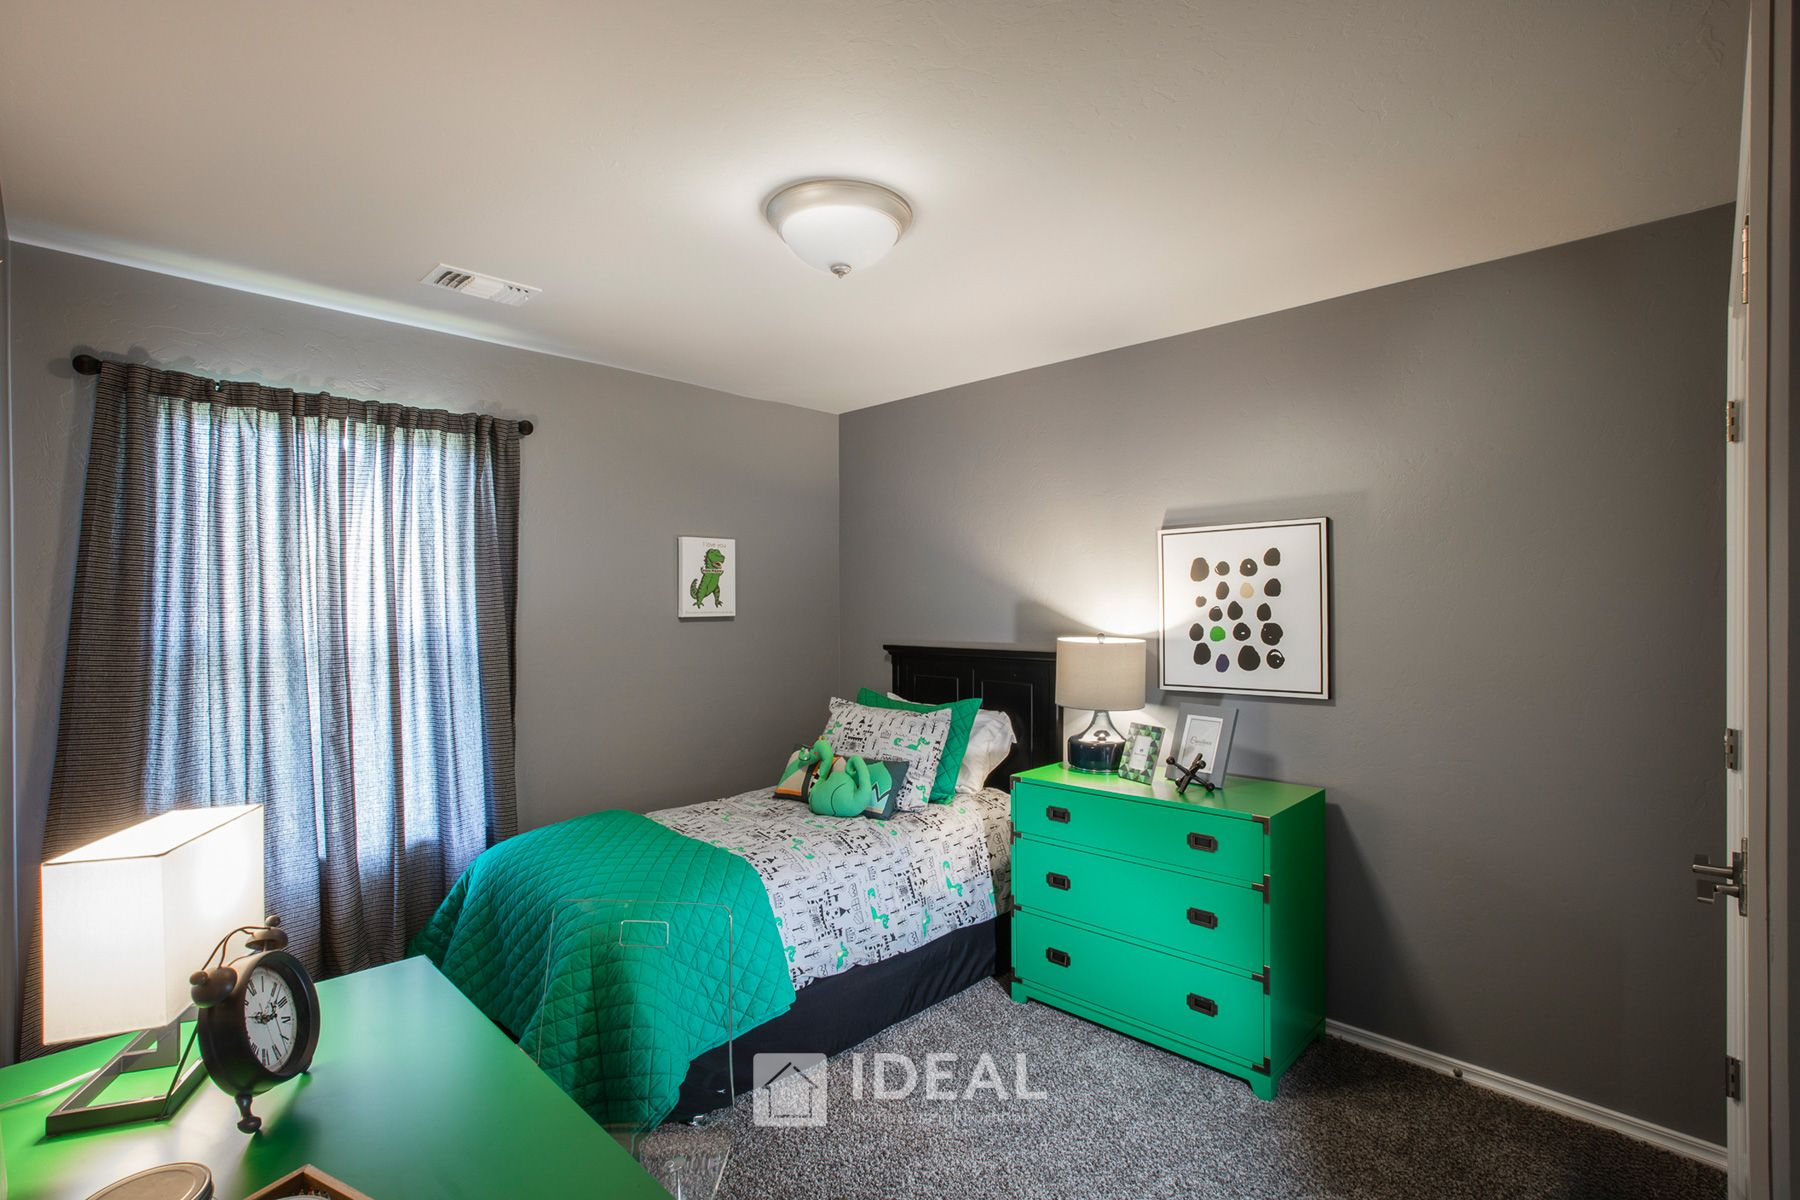 Bedroom featured in the Jefferson By Ideal Homes in Oklahoma City, OK